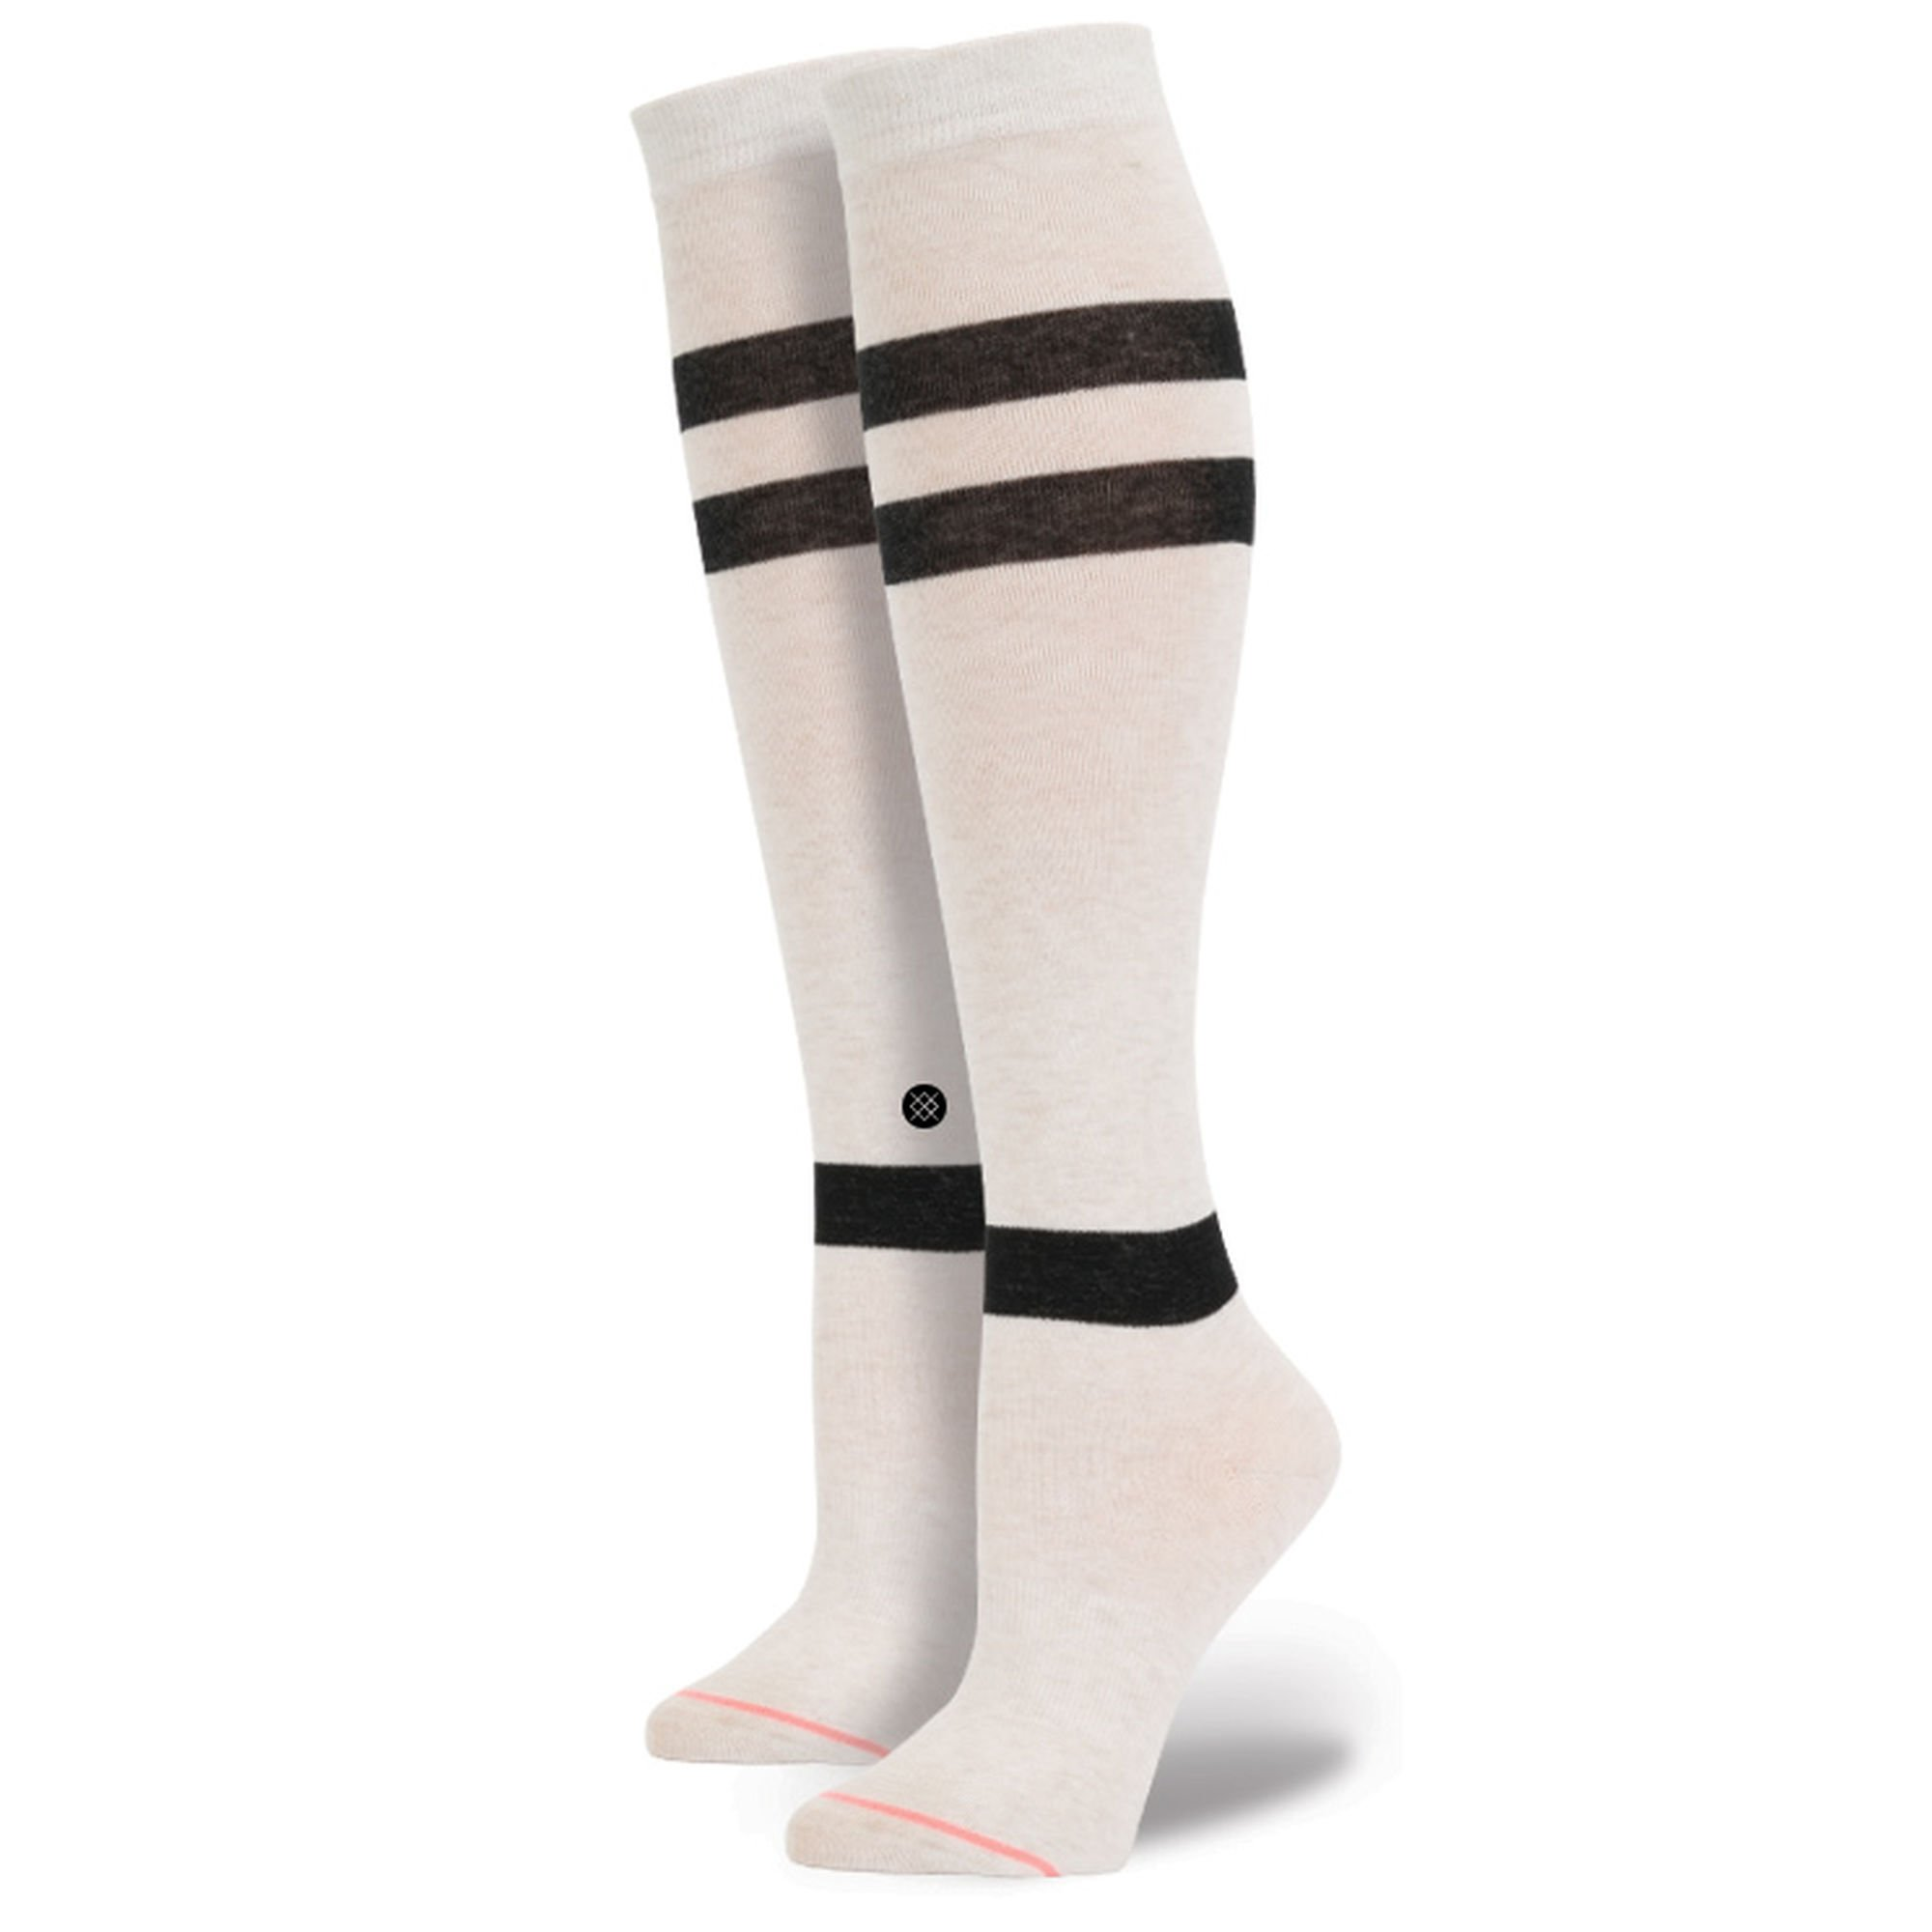 STANCE Women's Tall Gamer Boot Socks, Silver Heather, One Size